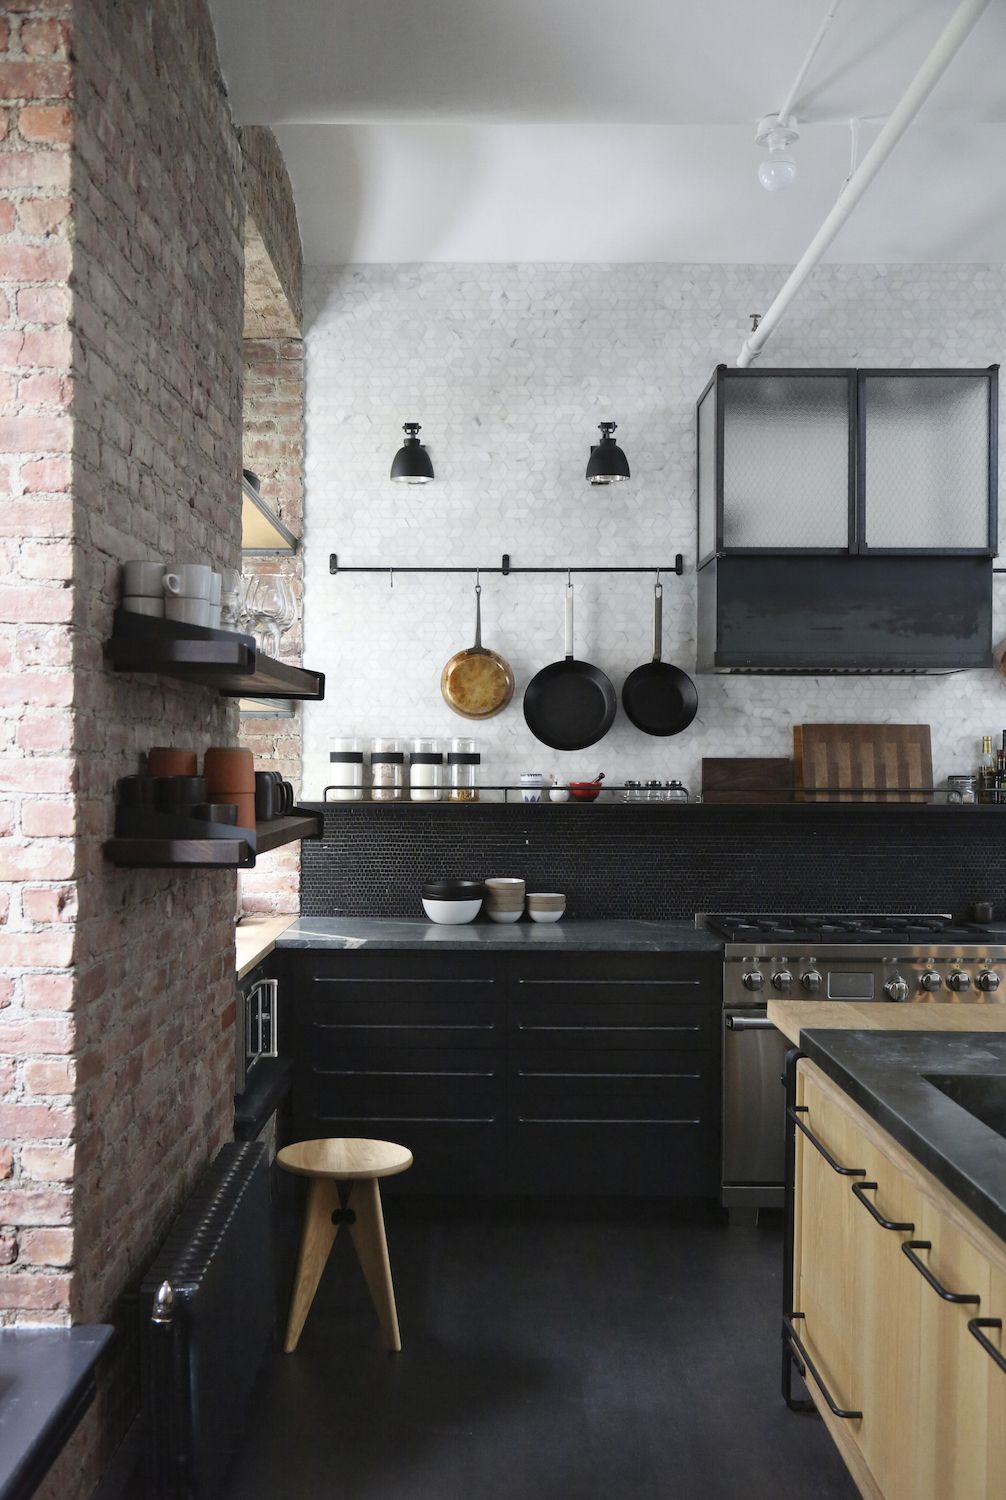 A Rugged Rustic Nyc Loft By Matt Bear Of Union Studio Remodelista Loft Kitchen Country Kitchen Kitchen Interior